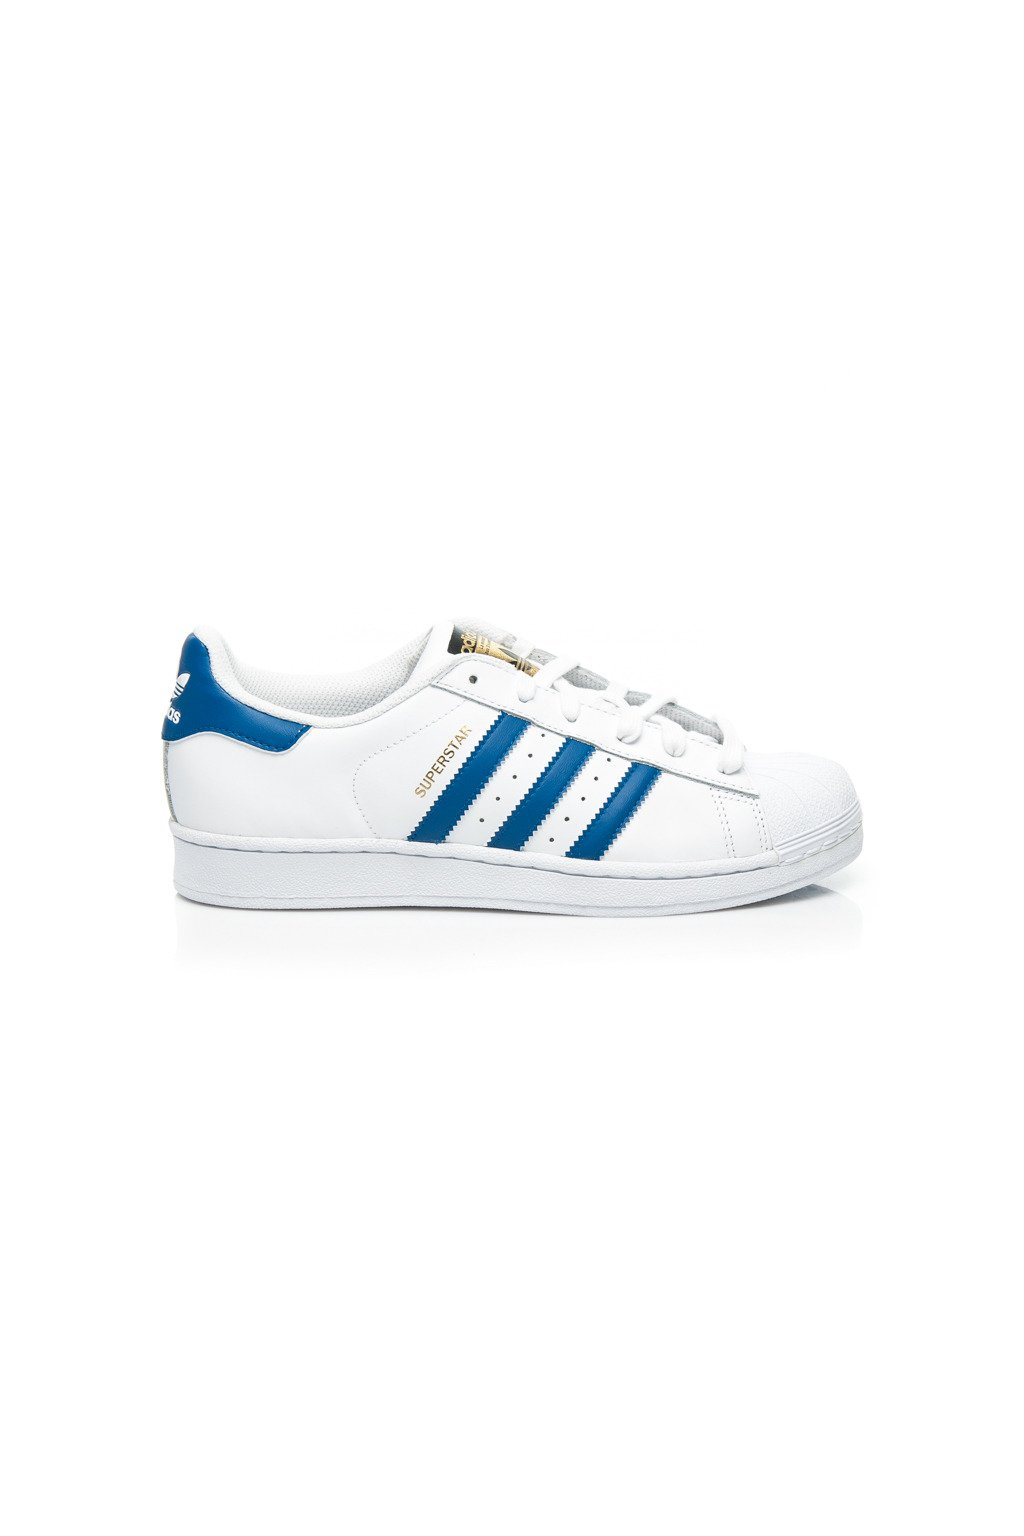 ADIDAS SUPERSTAR FOUNDATION  S74944